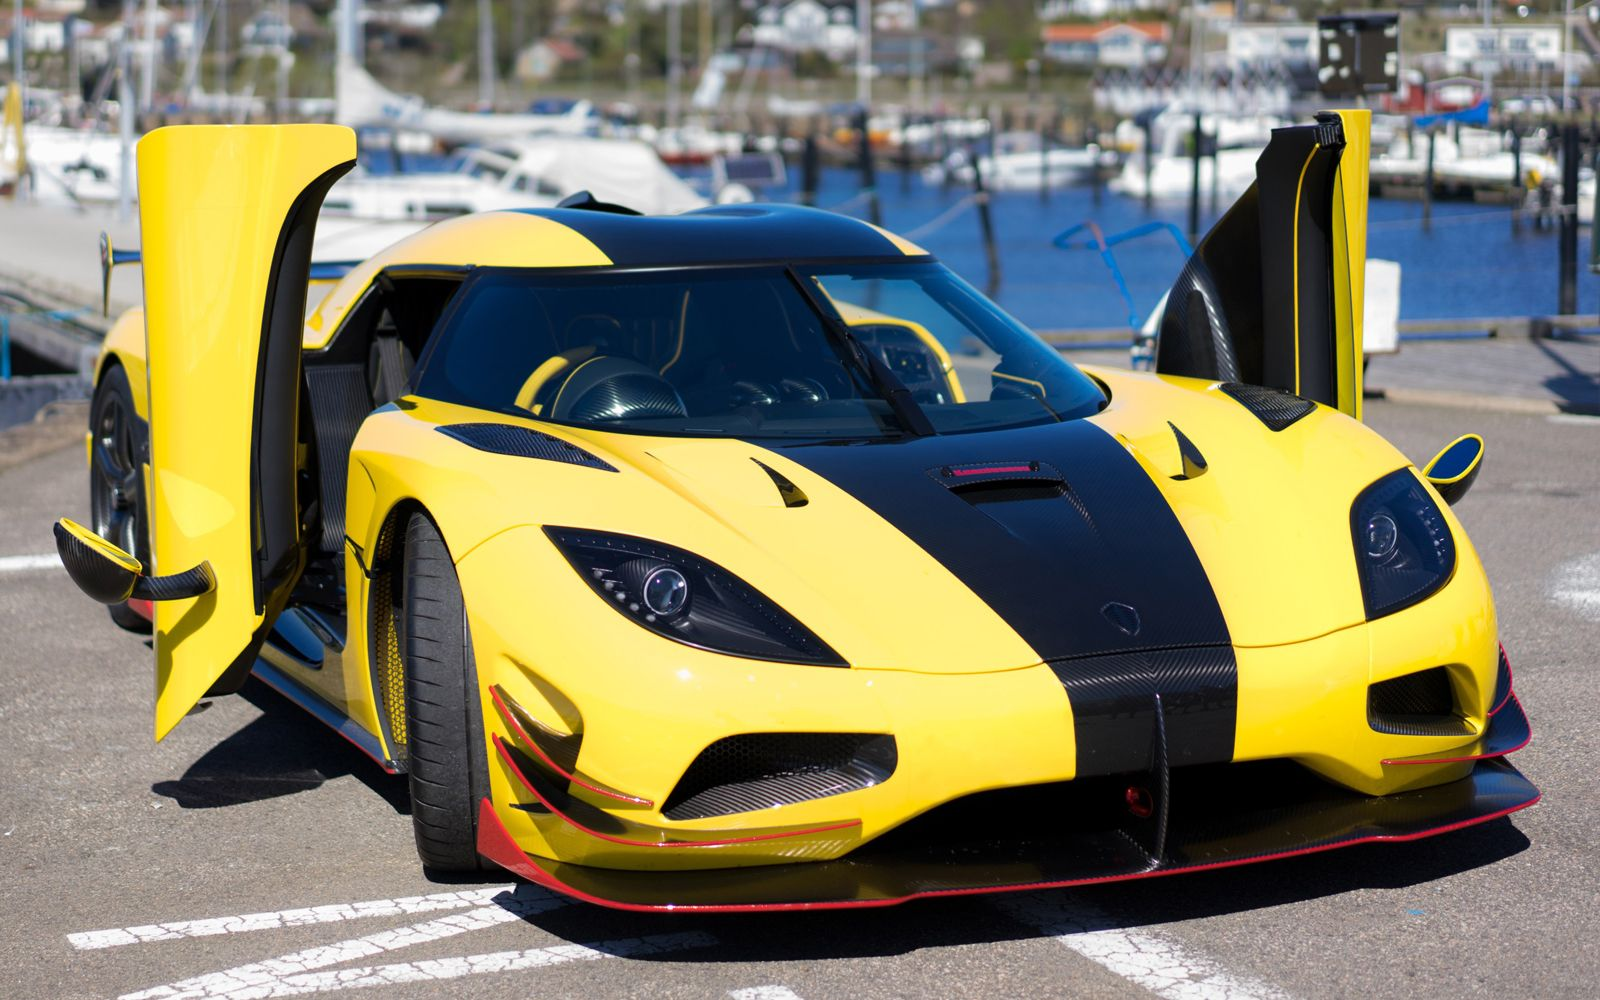 Fastest Car In The World >> Top Speed See The 20 Fastest Cars In The World Hong Kong